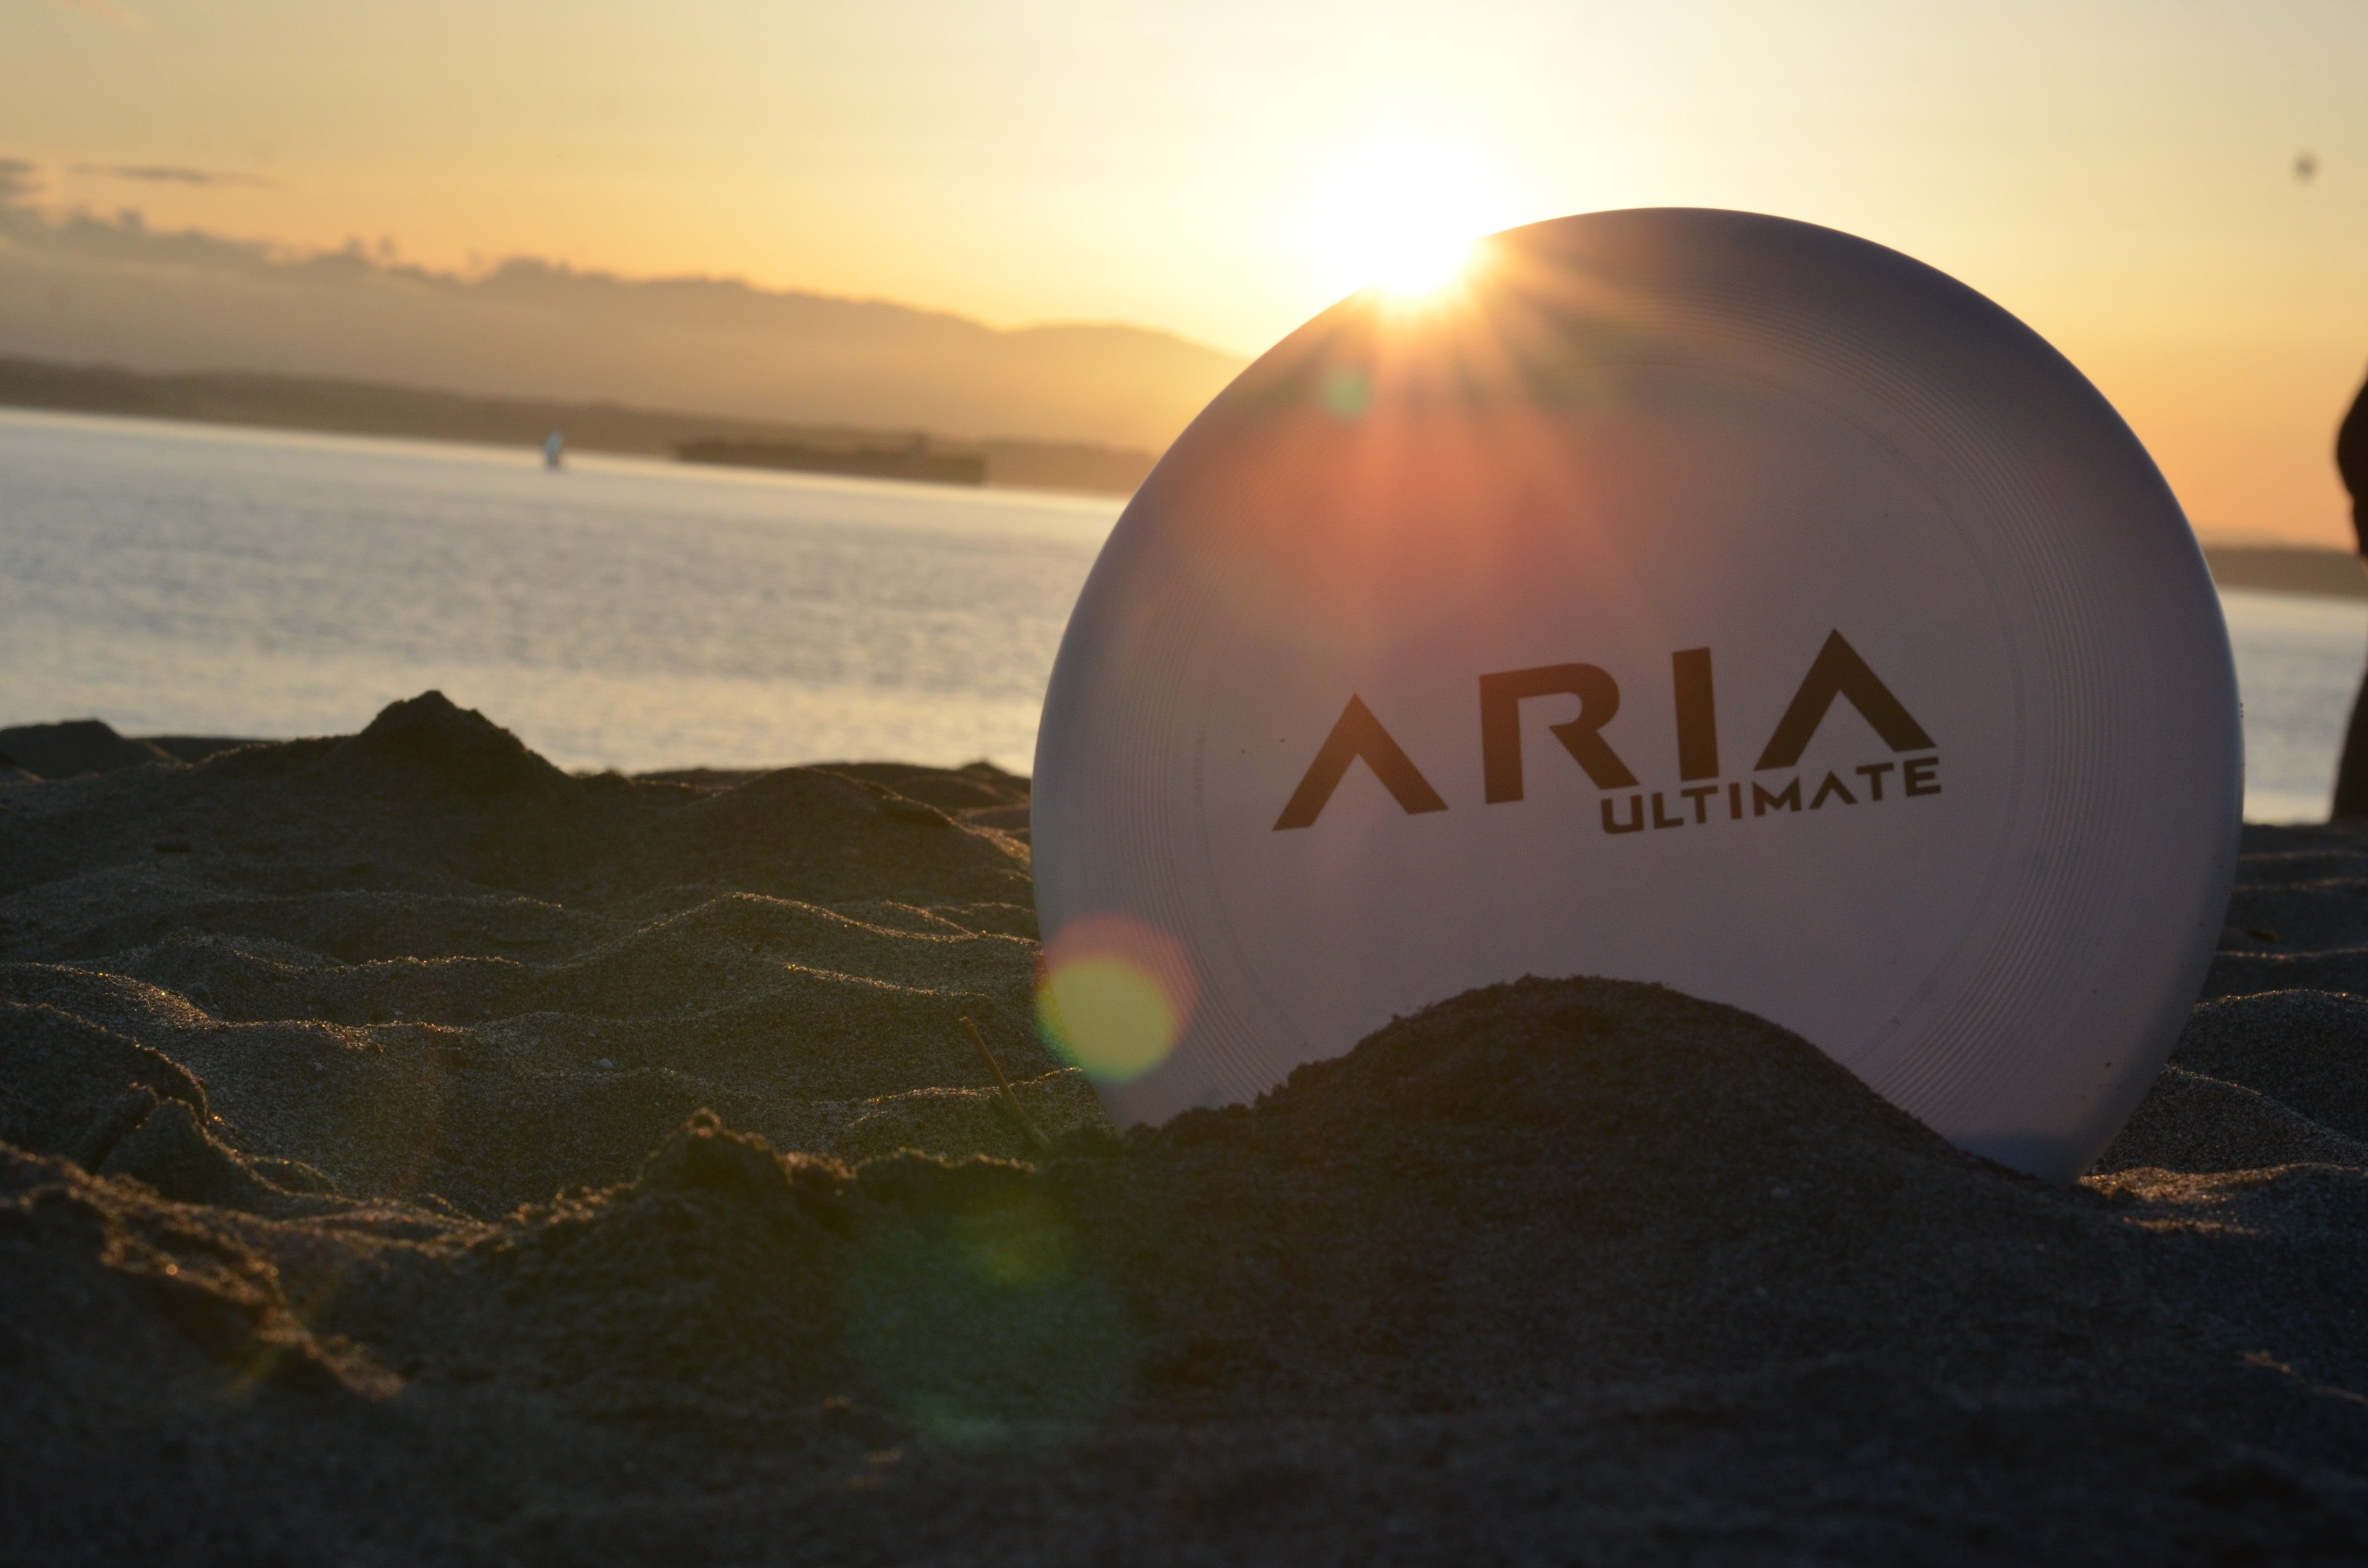 An ARIA Ultimate disc on the beach at sunset.